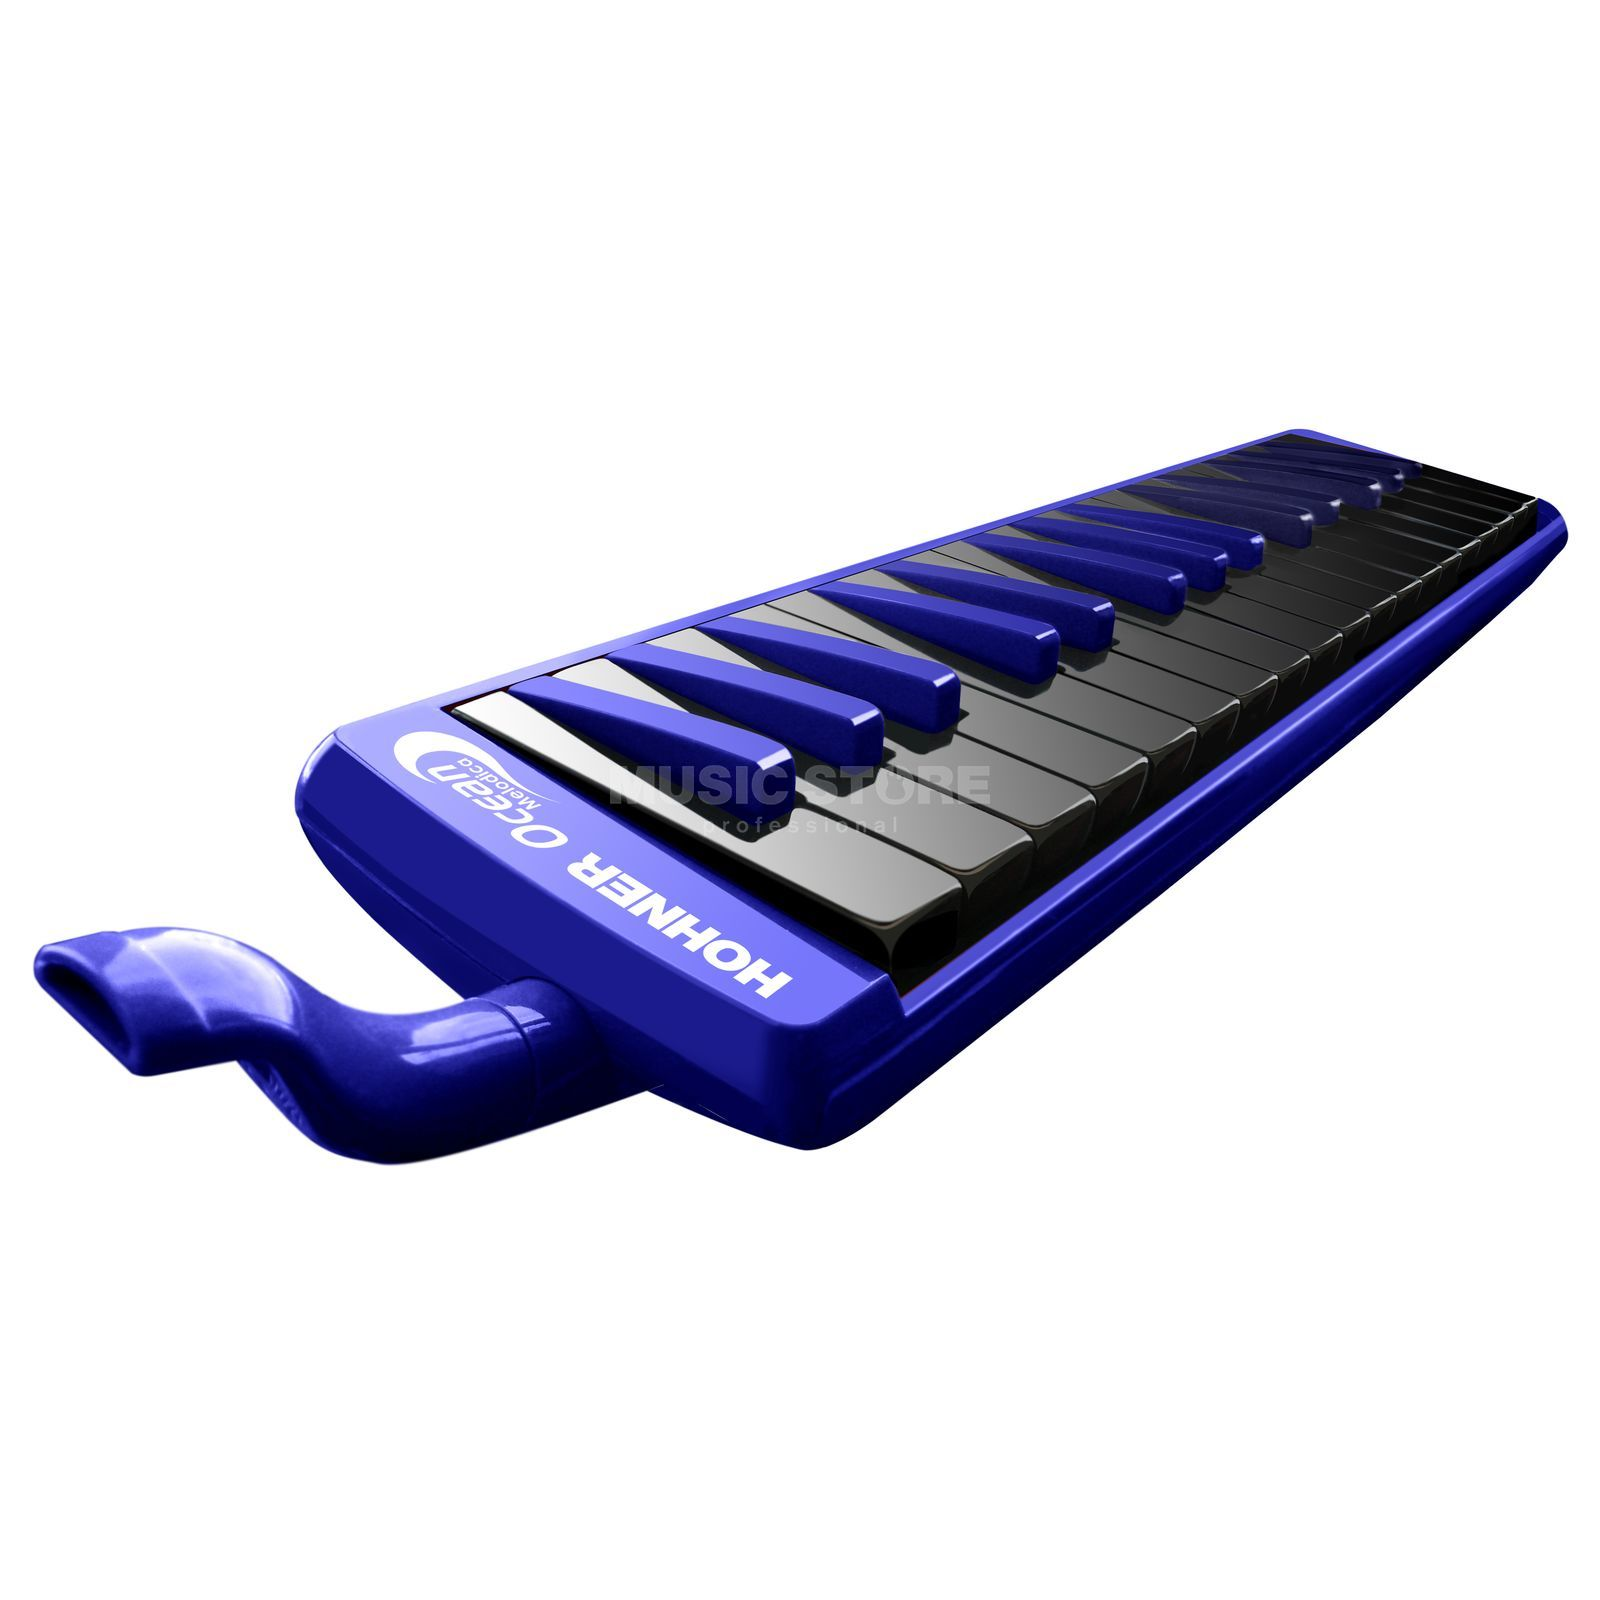 "Hohner Melodica 32 ""Ocean"" incl. Bag and Accessories Image du produit"